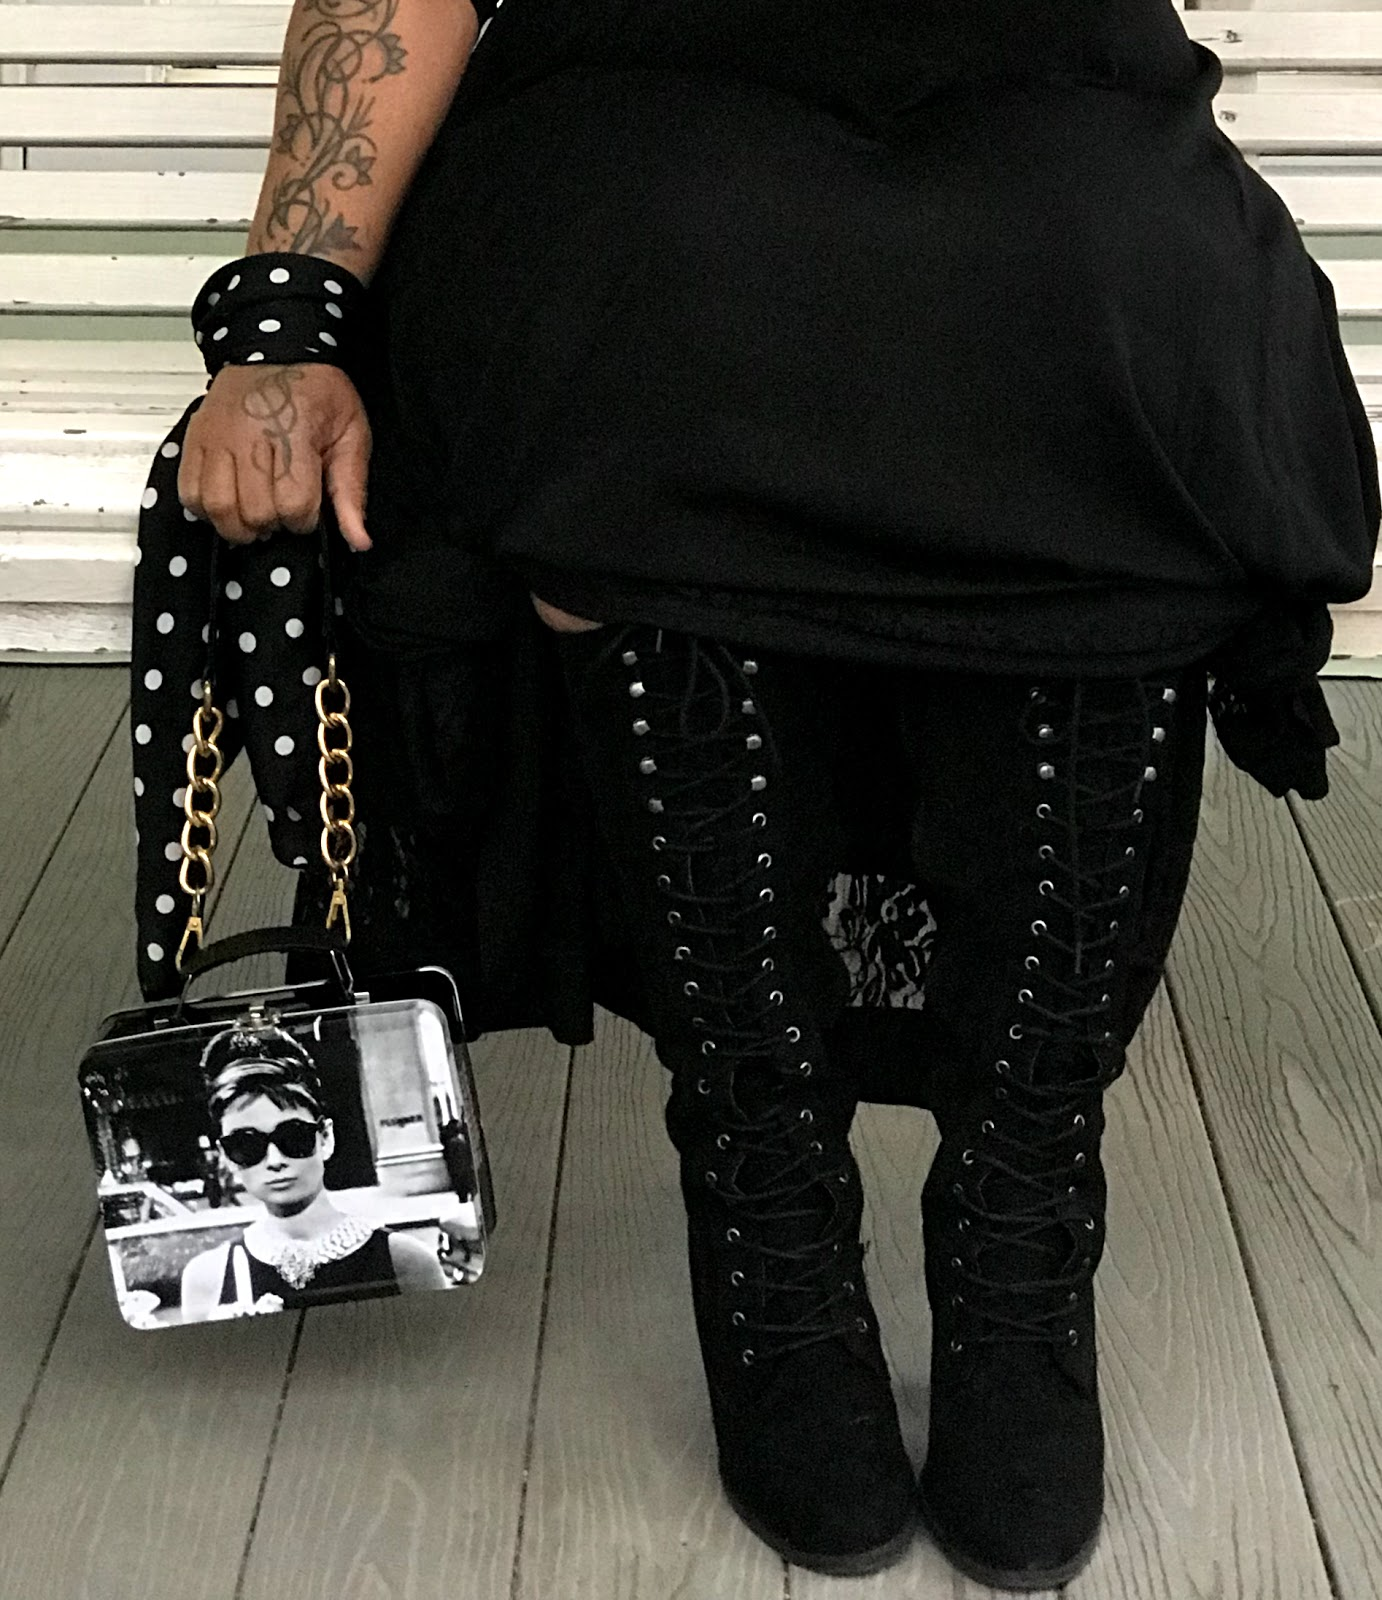 Image: Woman showing how she styles and accessorizes for date night. A mature style